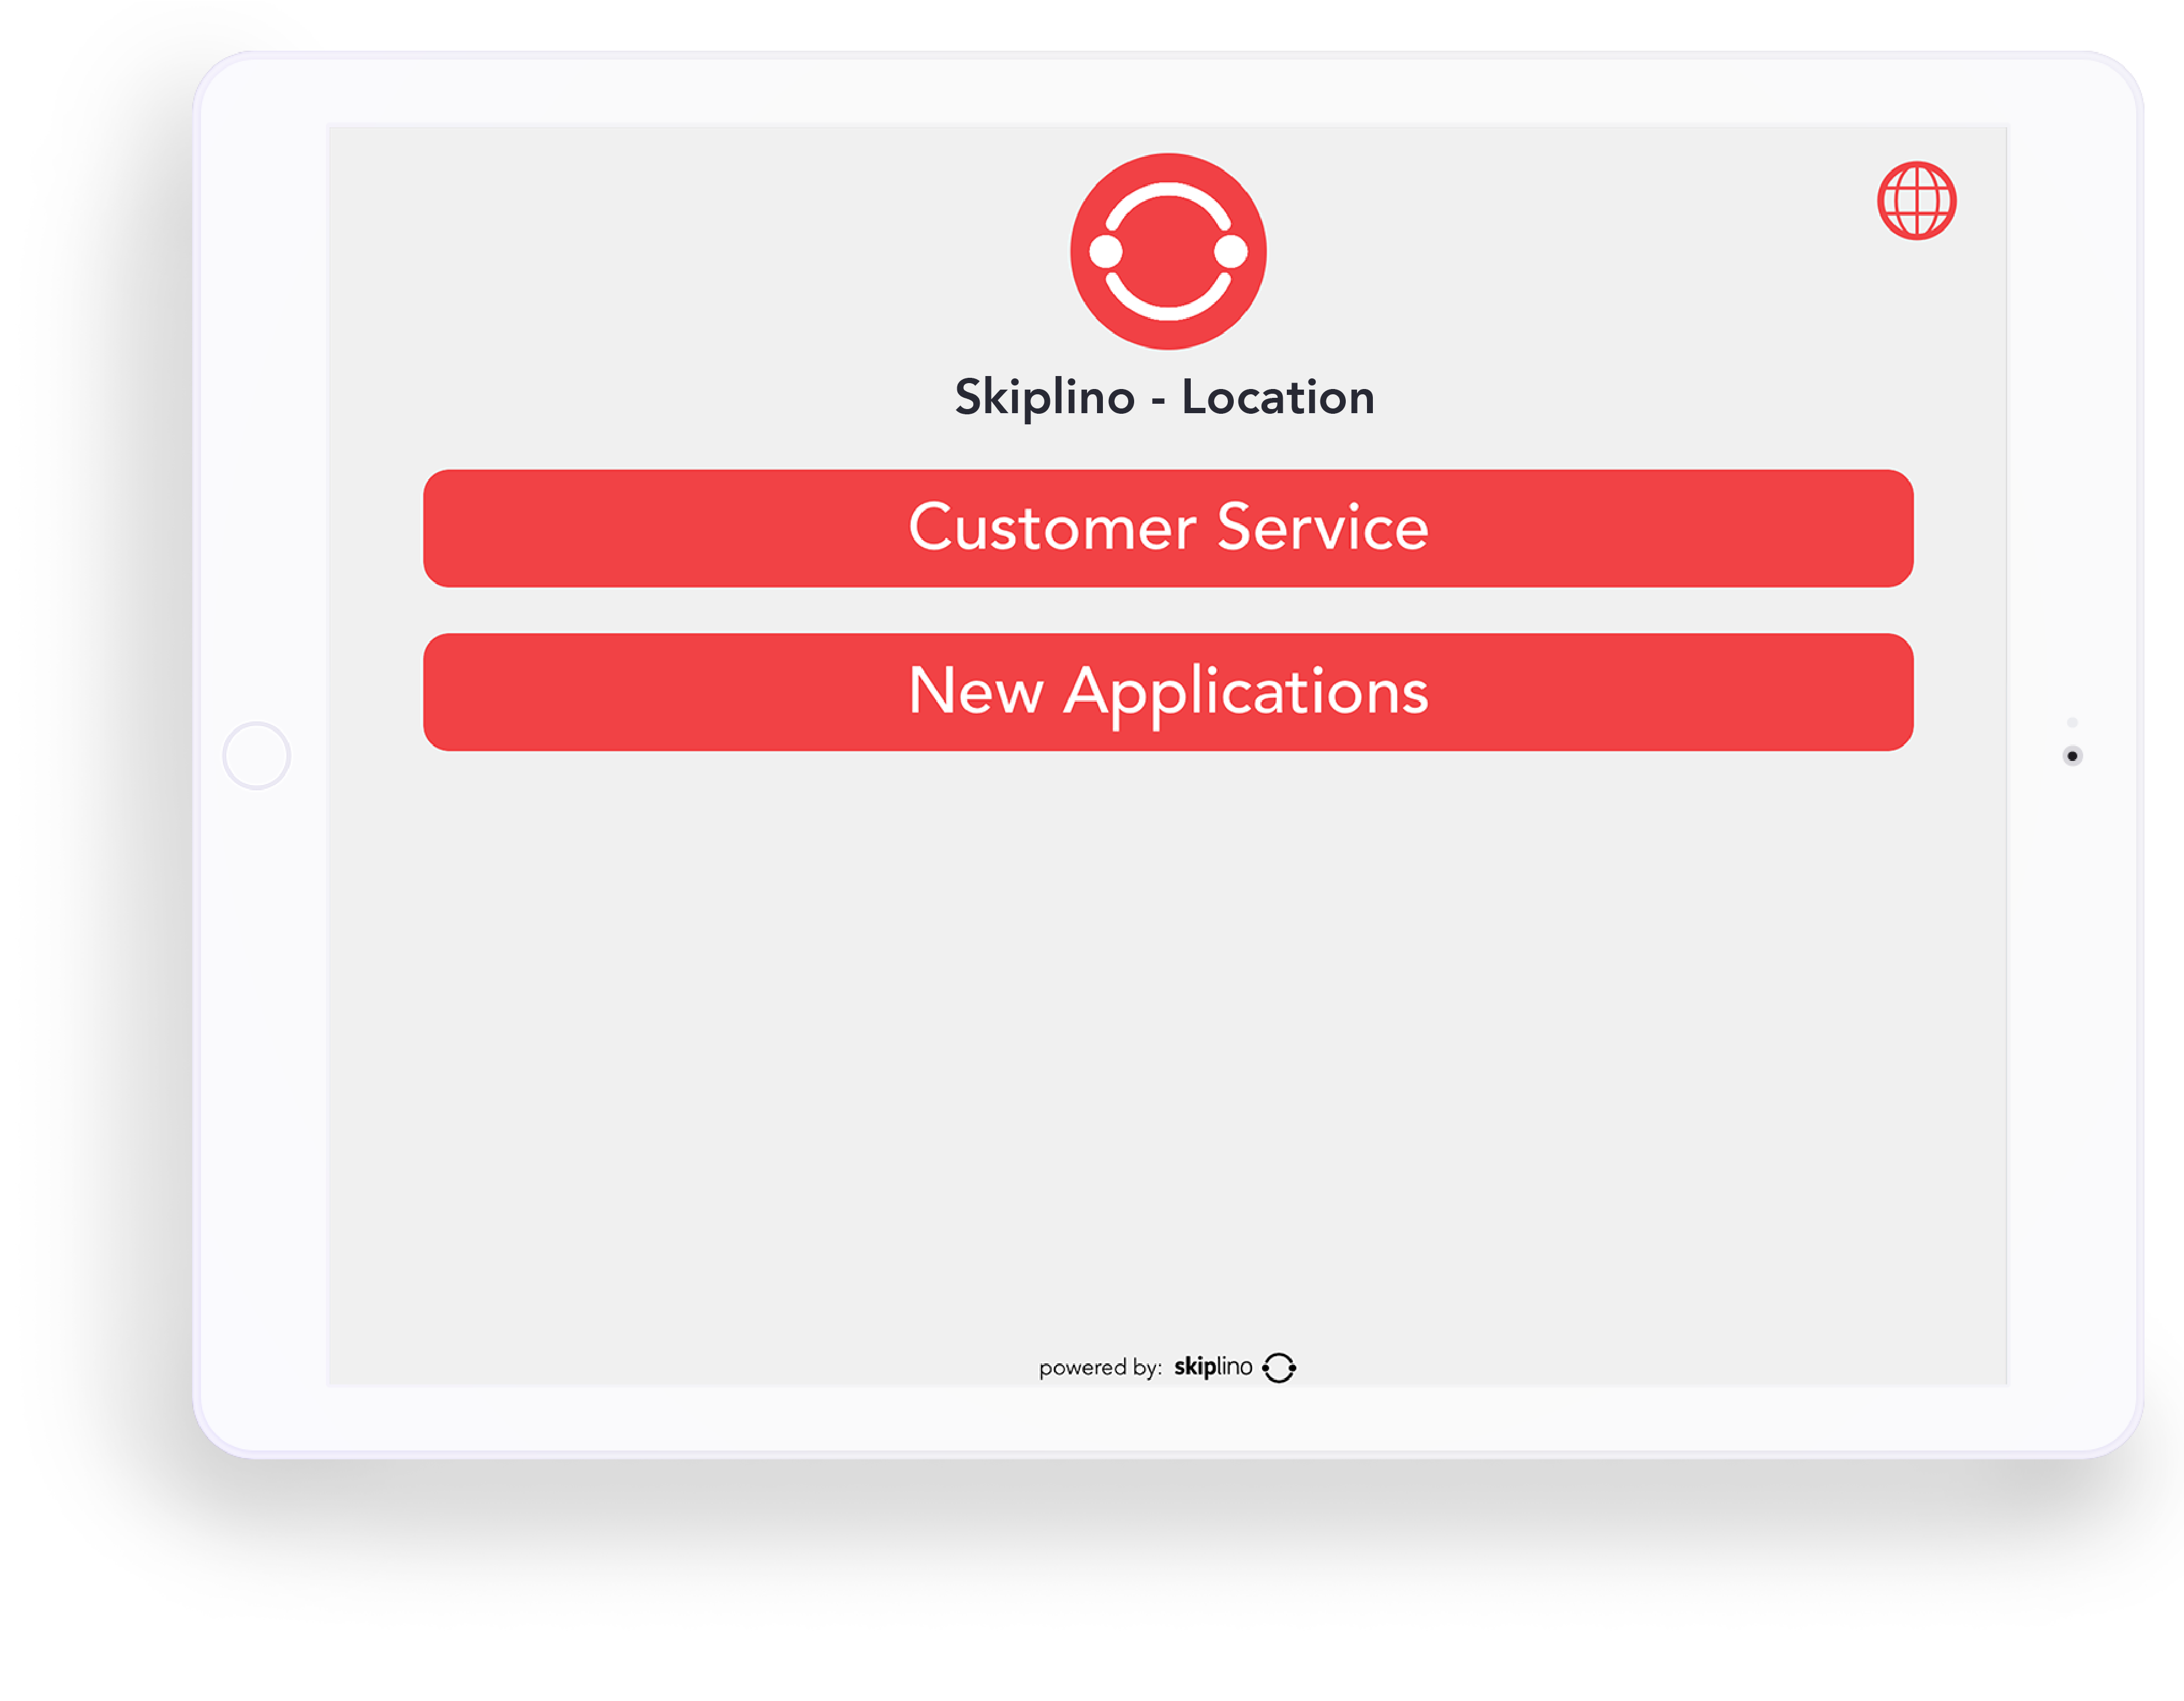 Customer queuing system